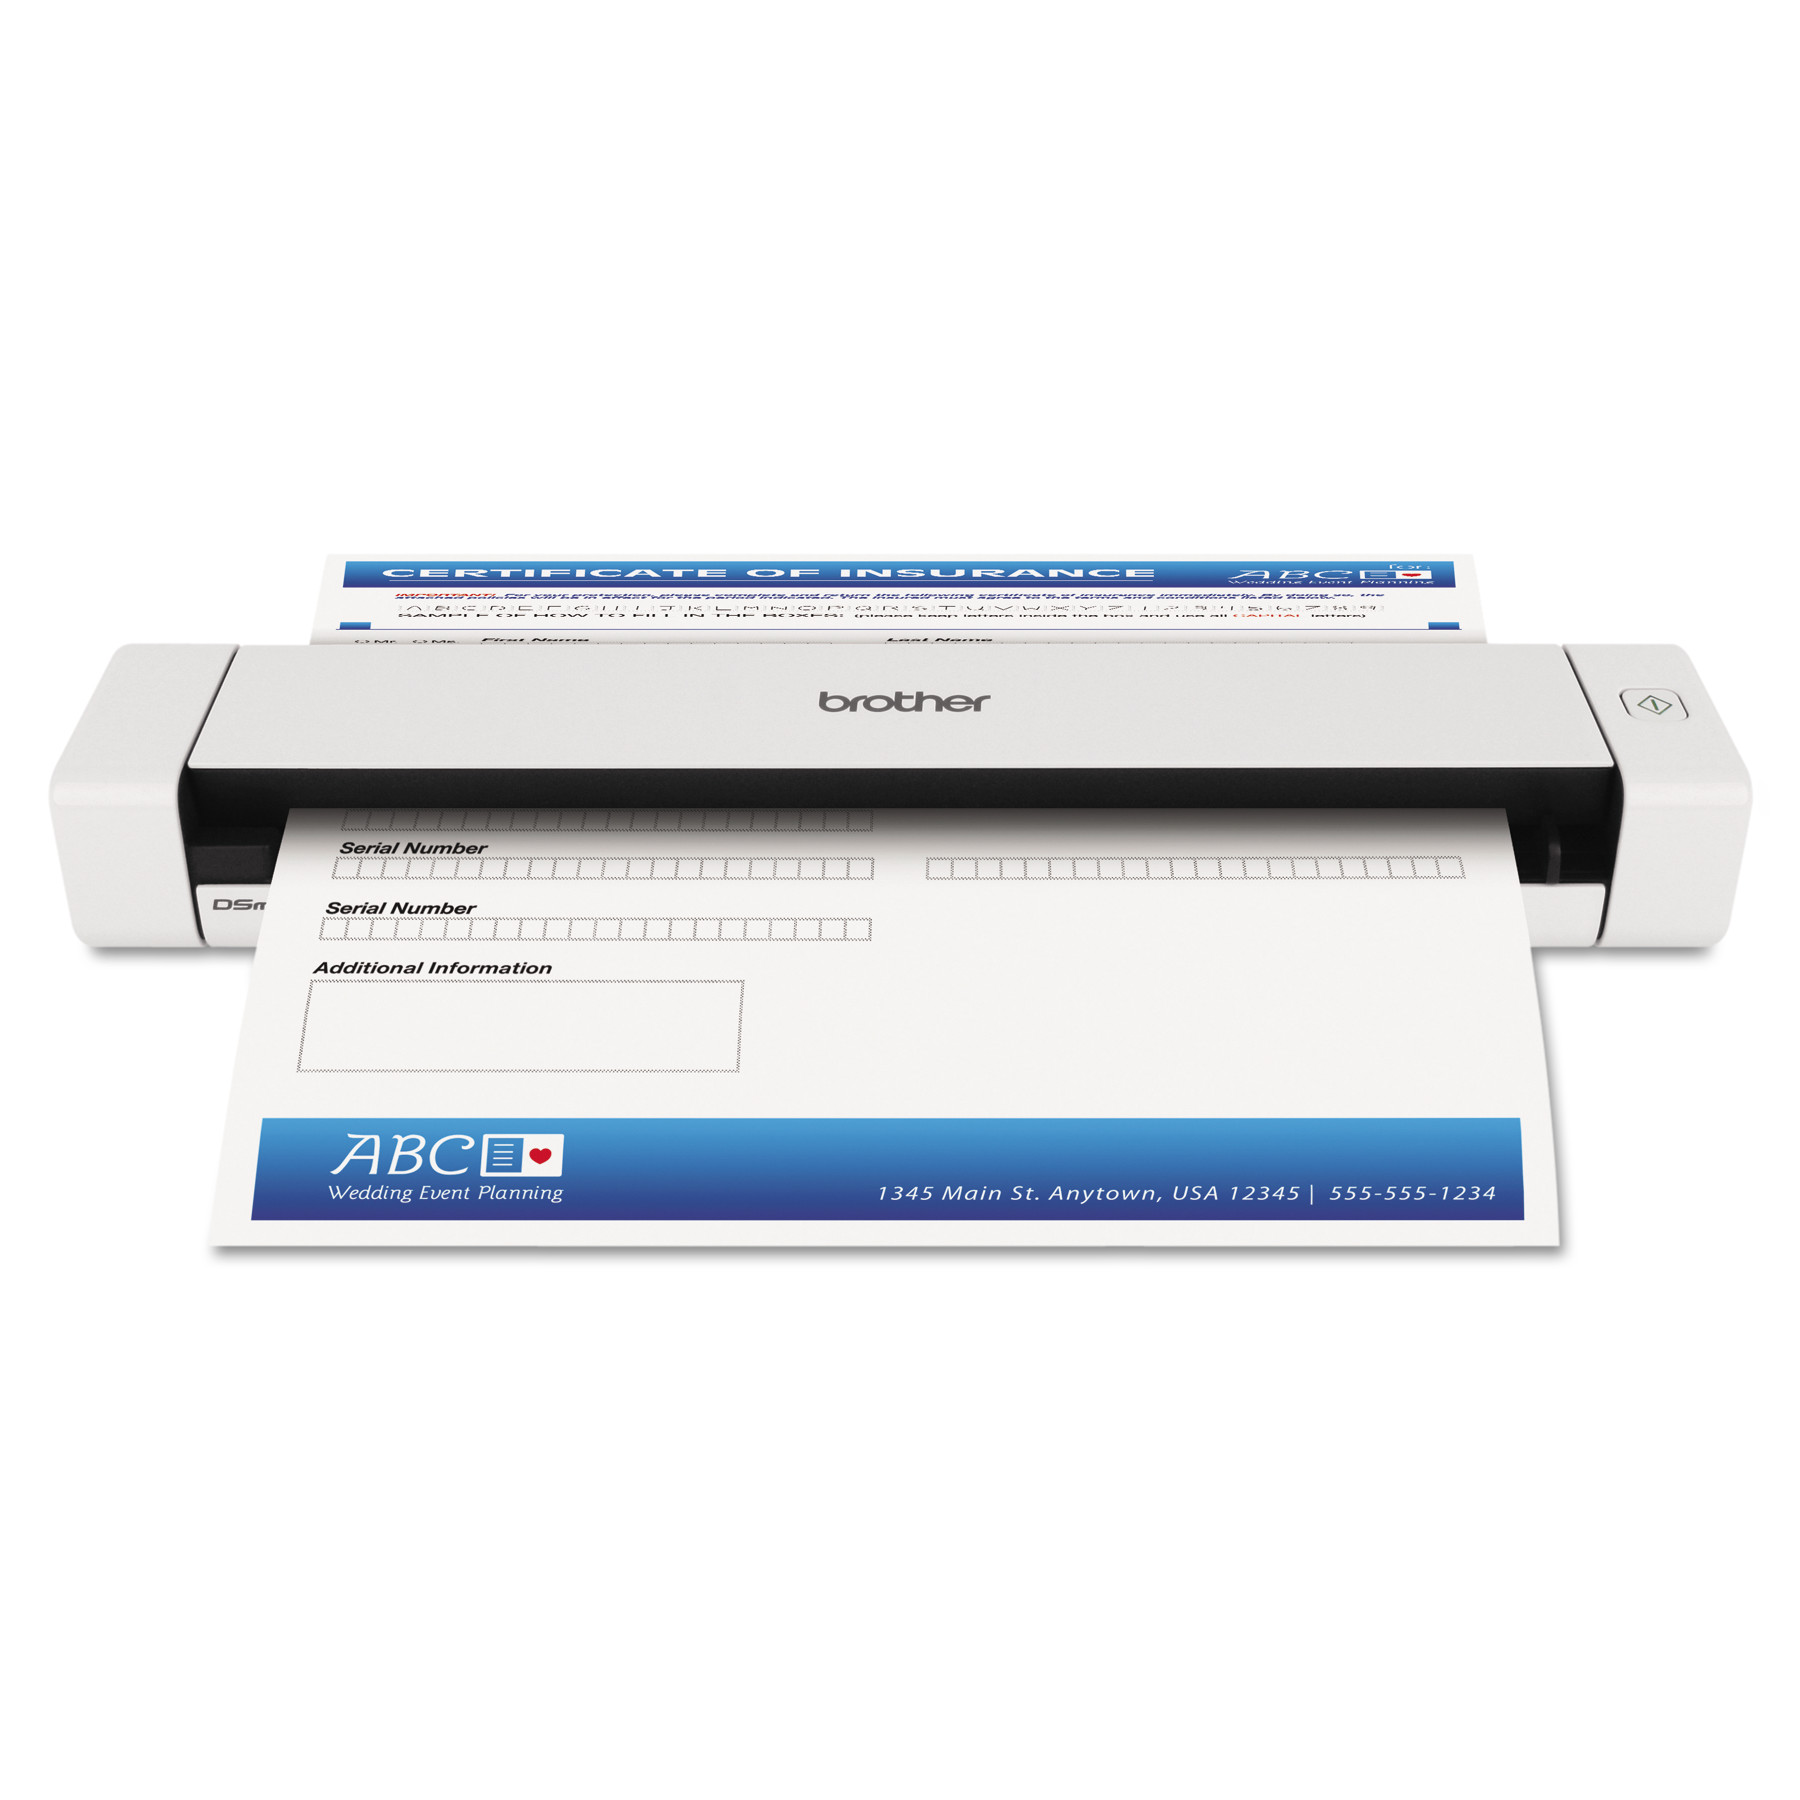 Brother DS620 Mobile Scanner, 600 x 600 dpi